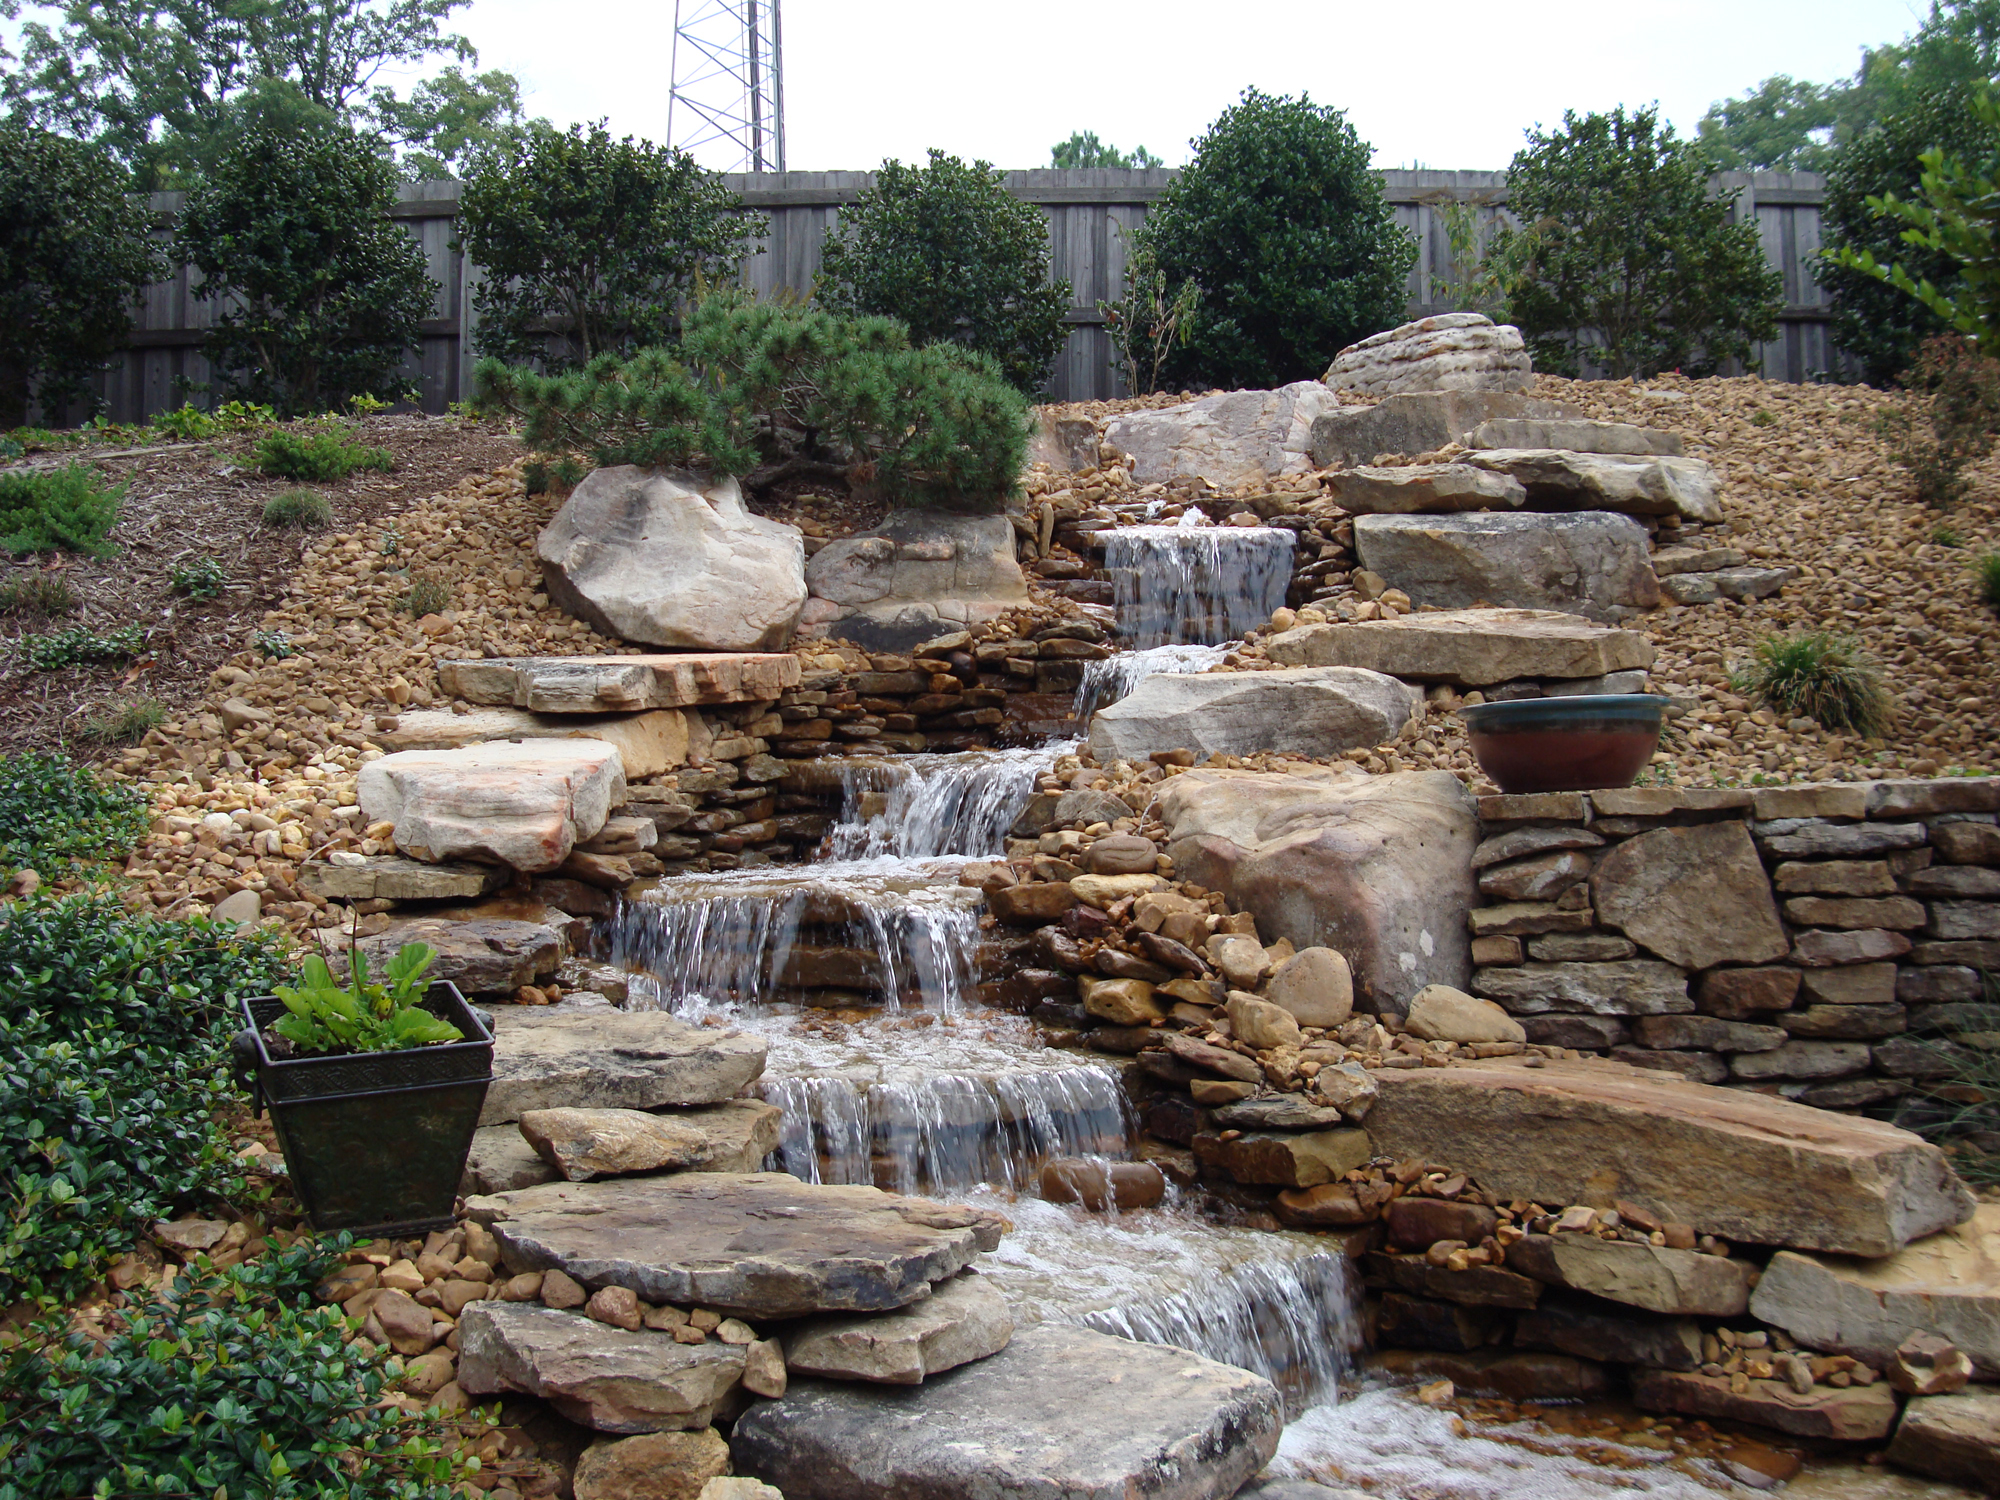 Pondless Waterfalls A Beautiful Alternative to Ponds  Backyard Blessings